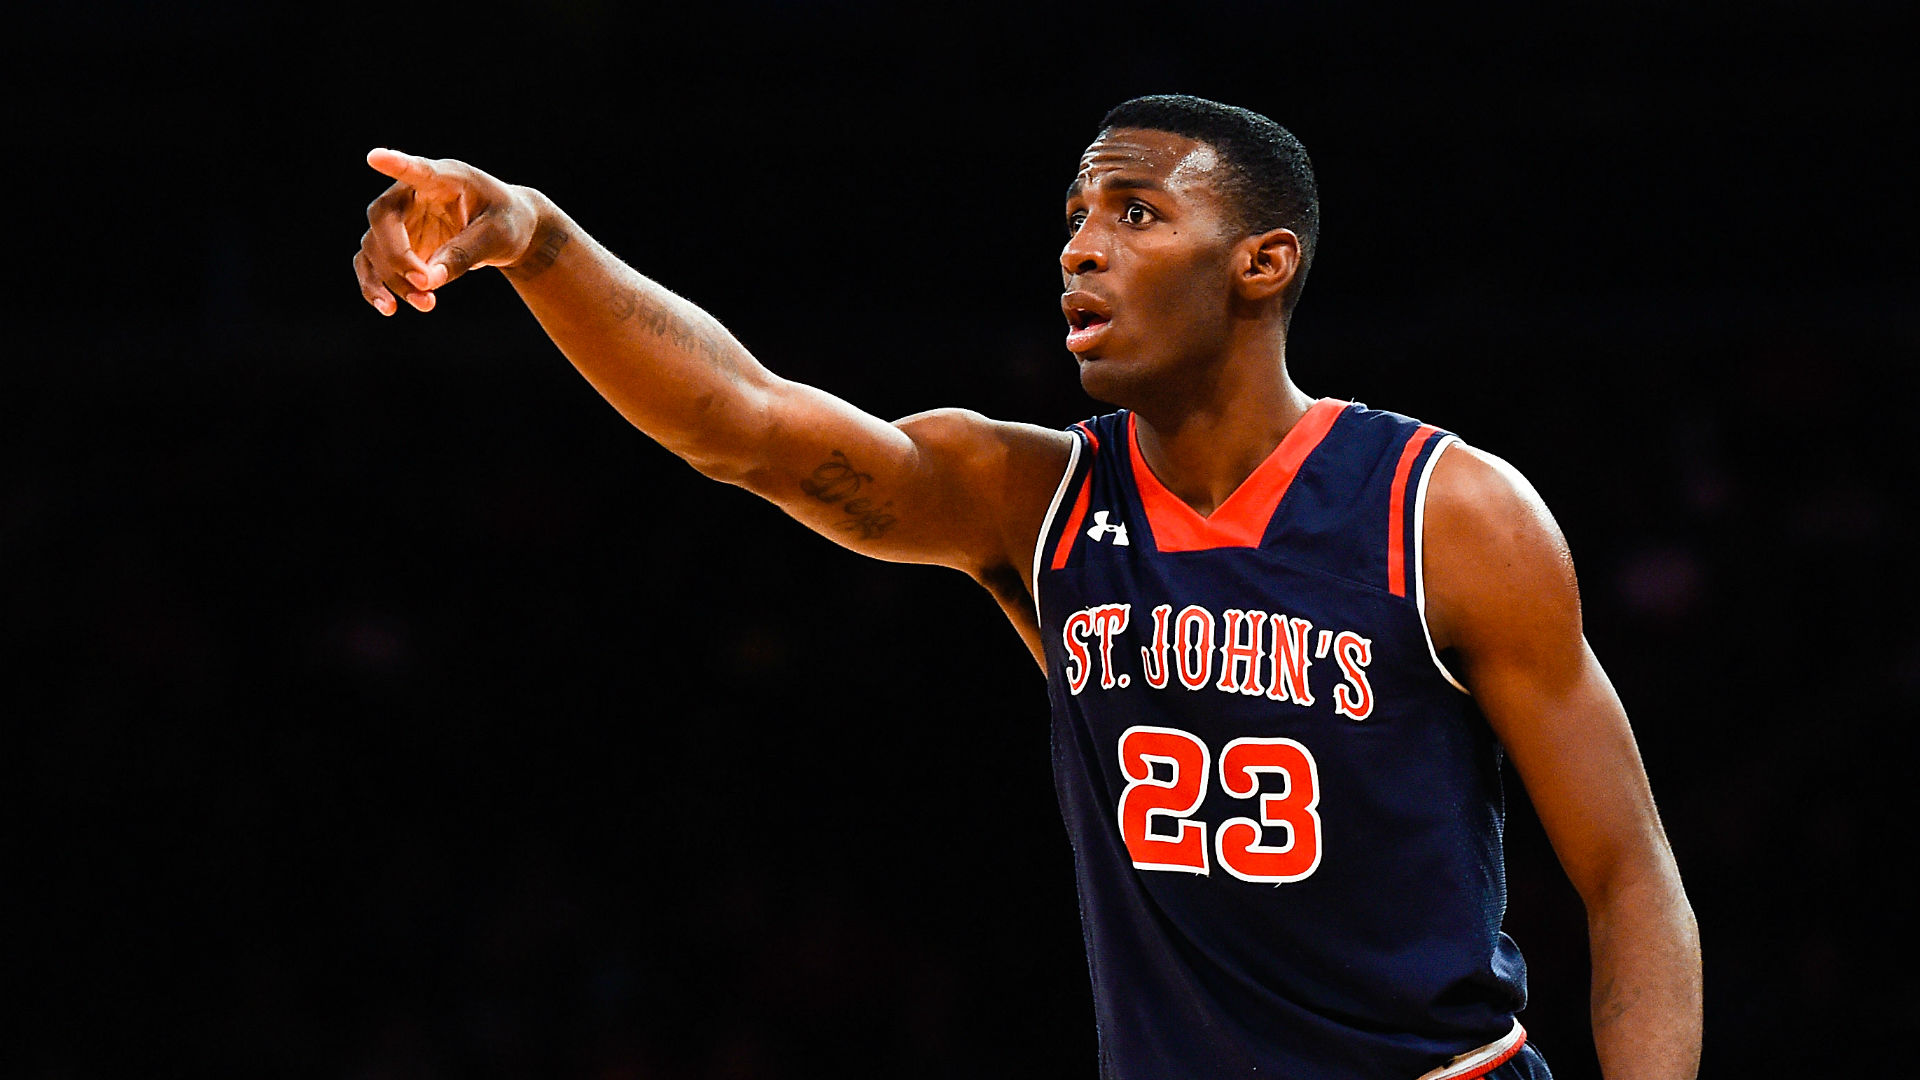 Rysheed Jordan reportedly academically ineligible; future at St. John's uncertain